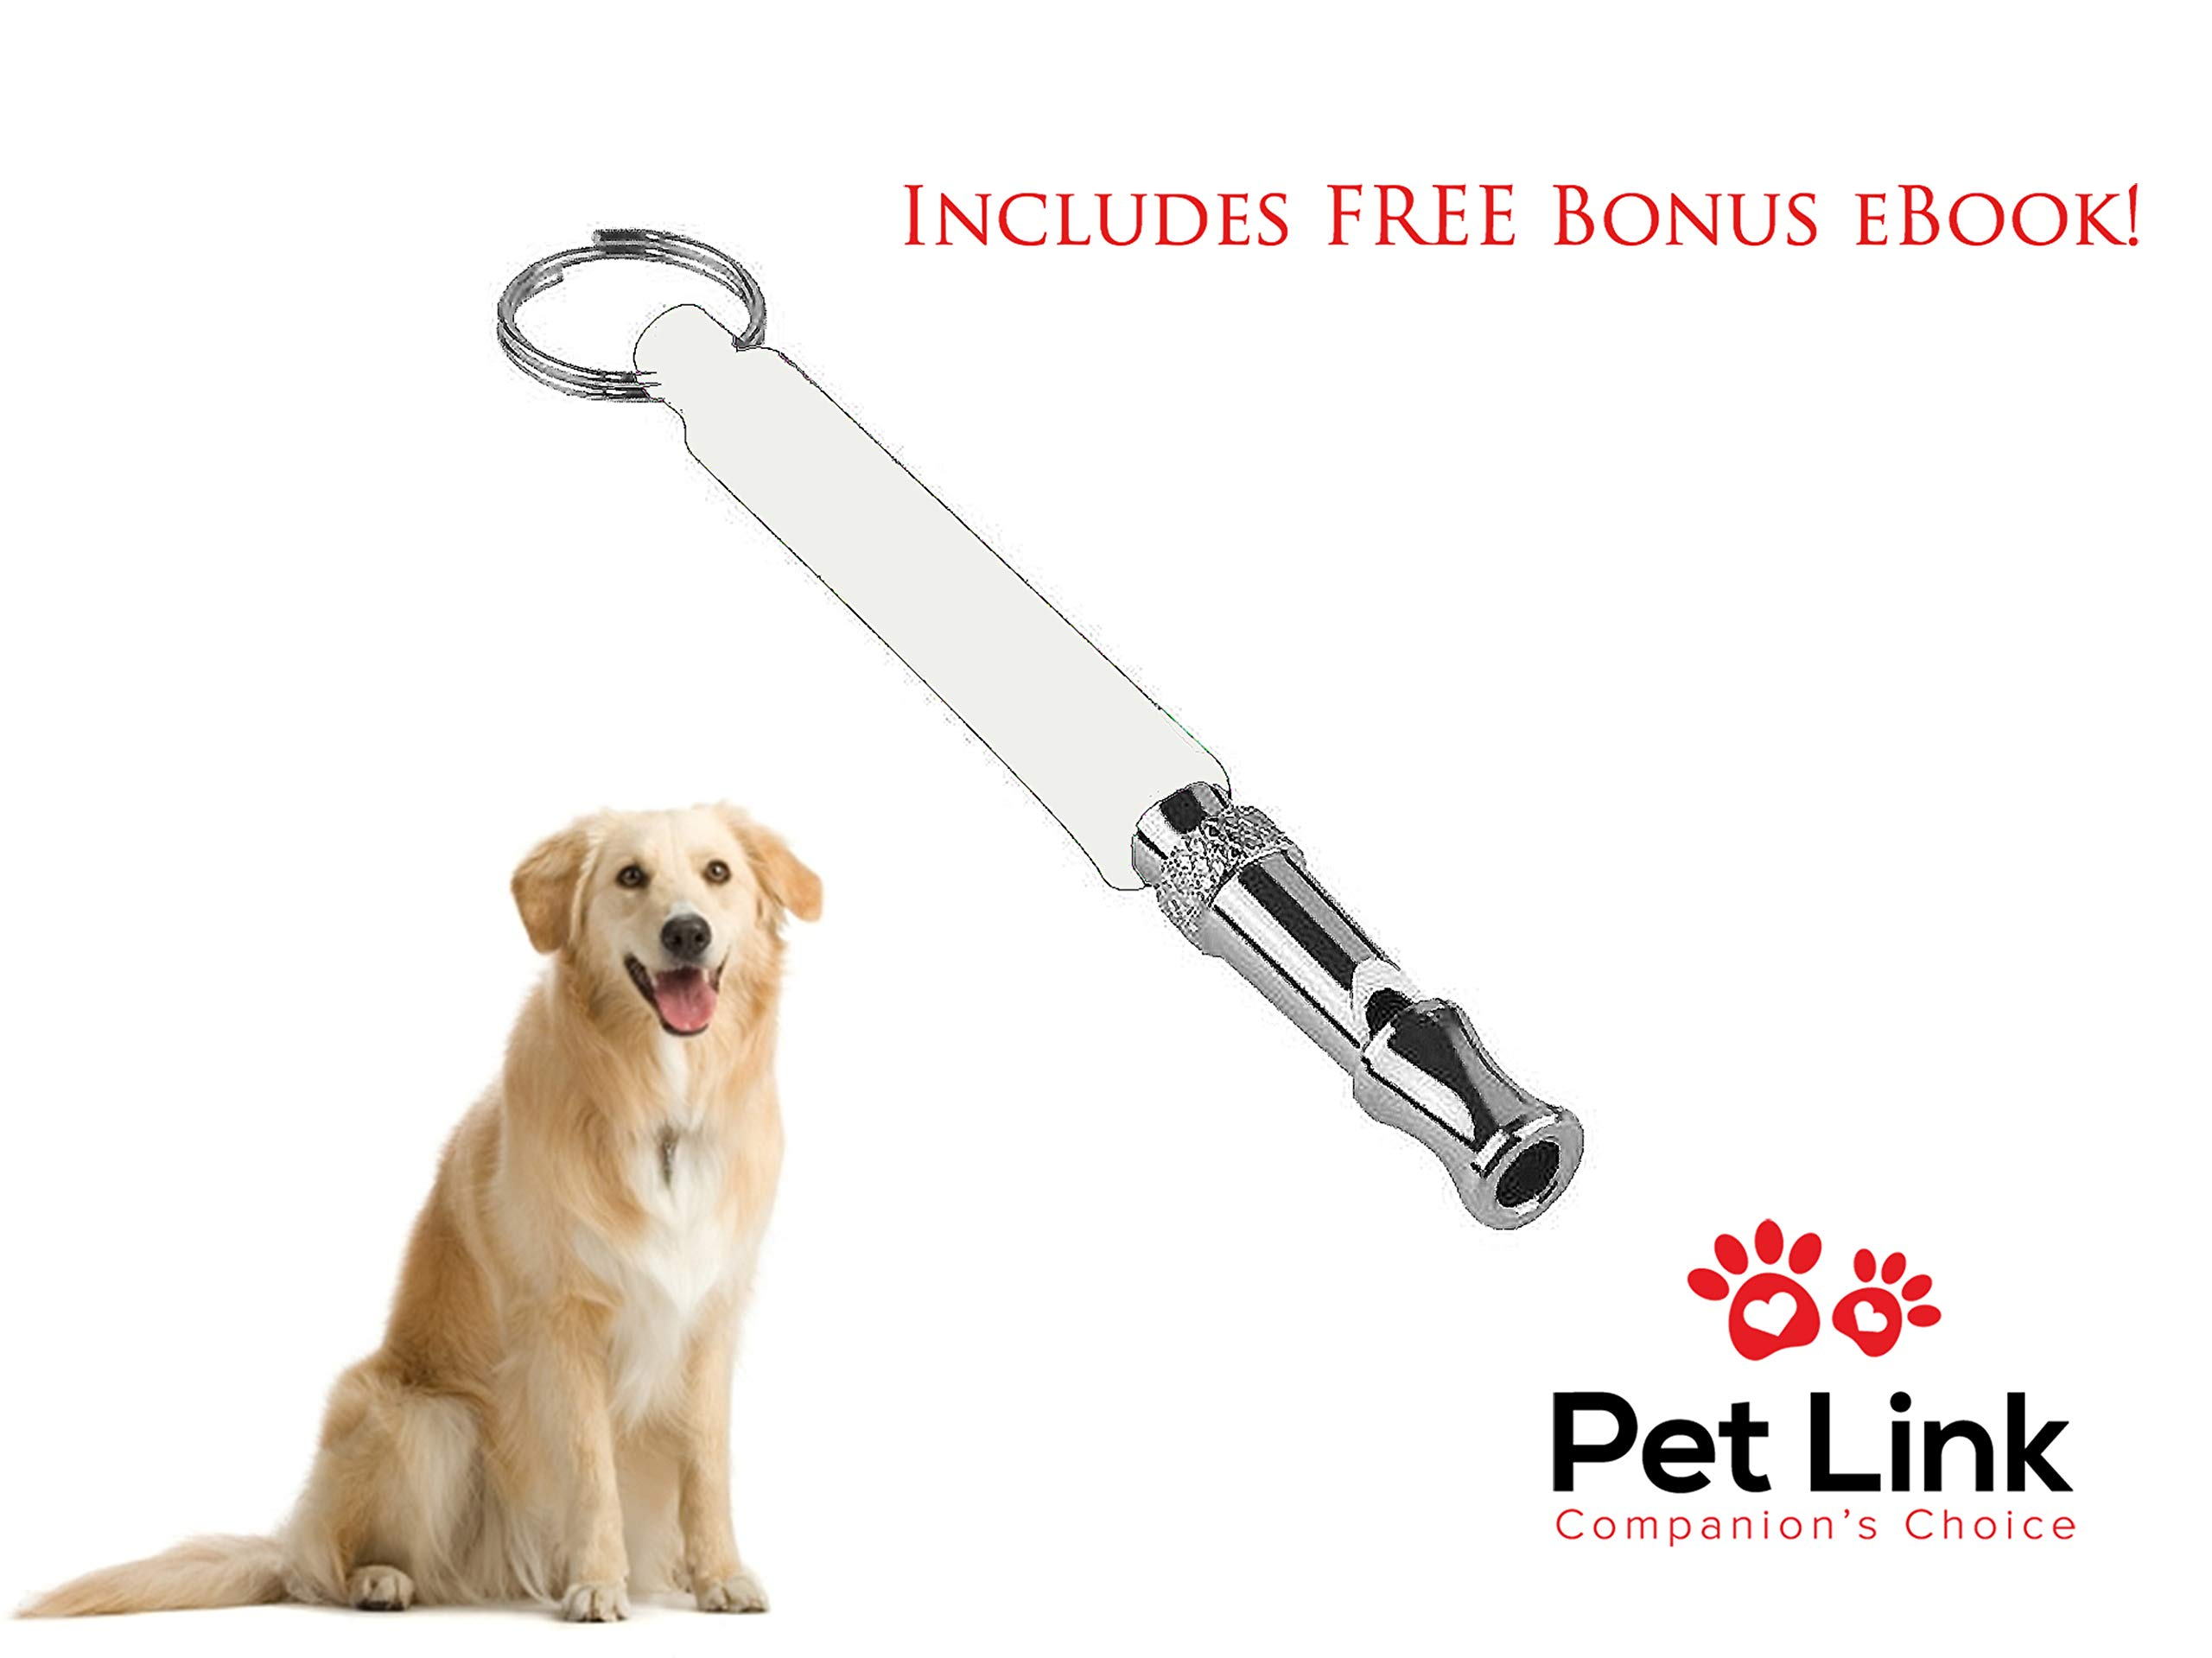 Pet Link Dog Whistle - Stop Barking - Increase Obedience, Yapping, Howling - Adjustable Pitch Tool - Ultrasonic Sound Waves Safe for Dogs - Includes Free Premium Lanyard (White)